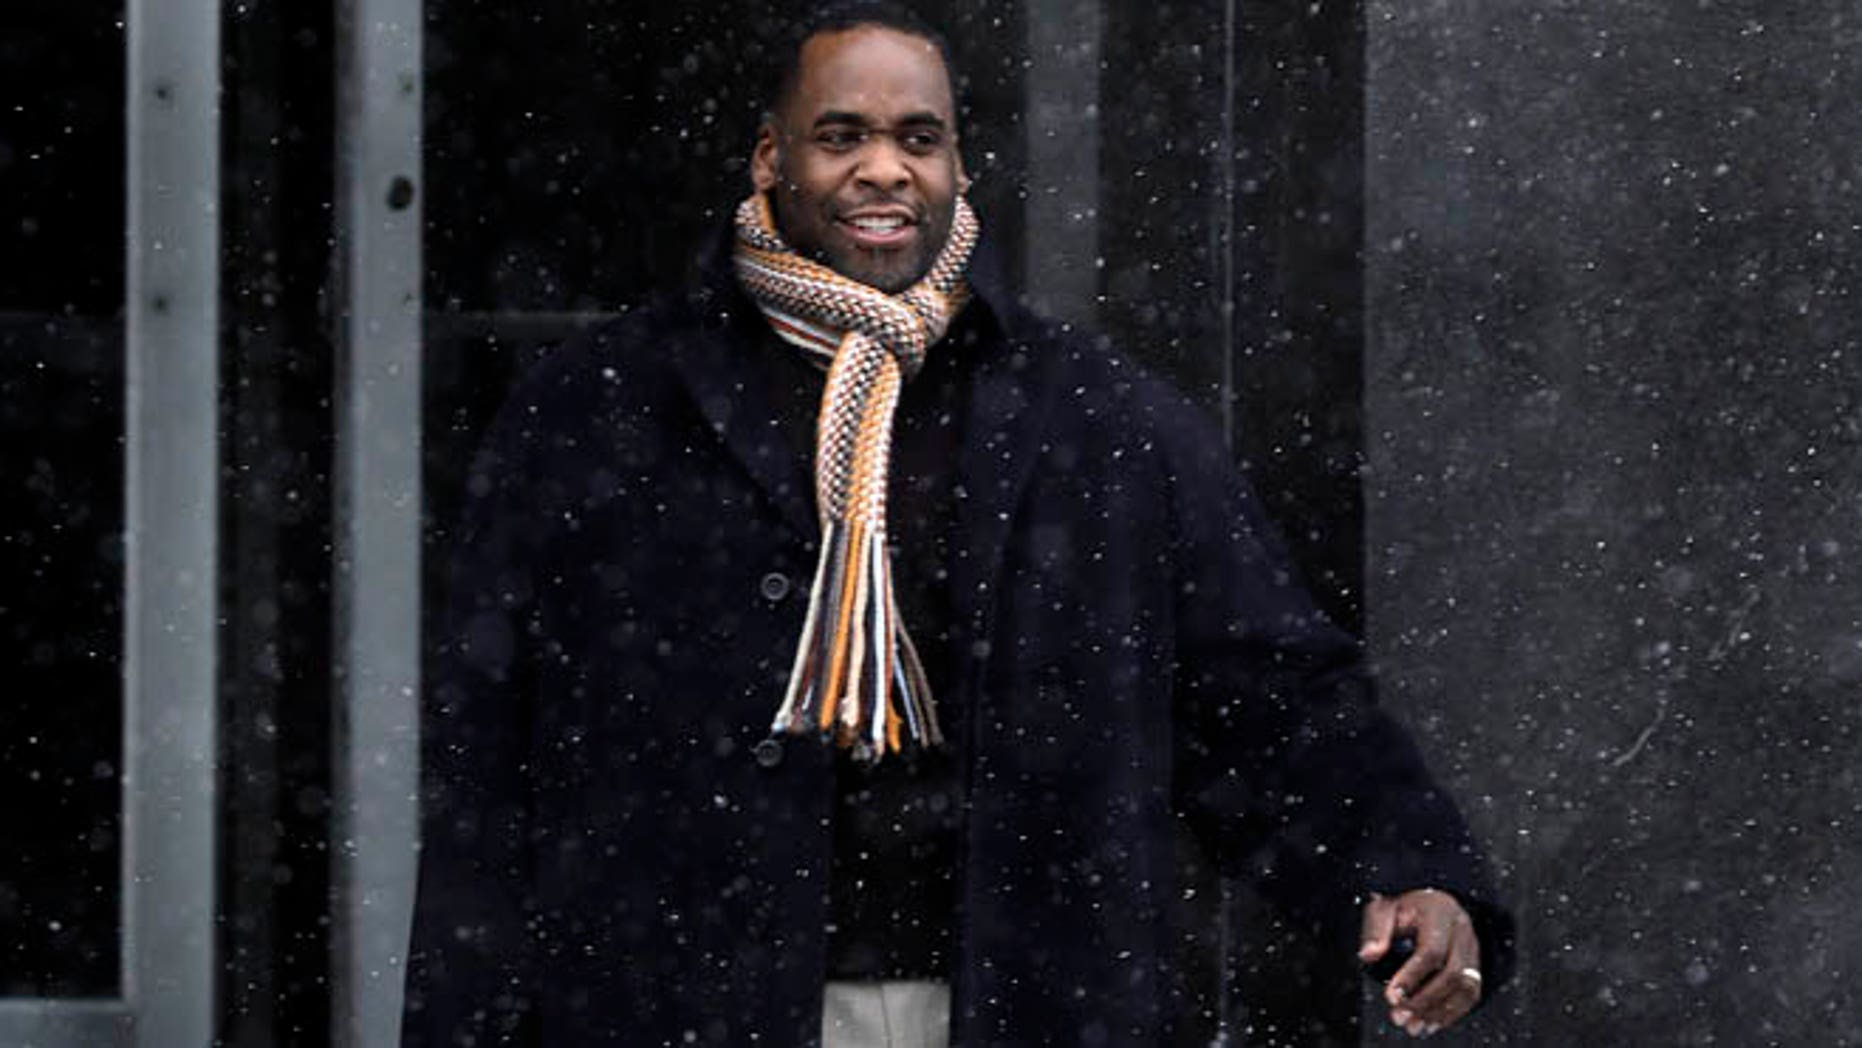 Jan. 25, 2013: In this file photo, former Detroit Mayor Kwame Kilpatrick leaves federal court in Detroit.